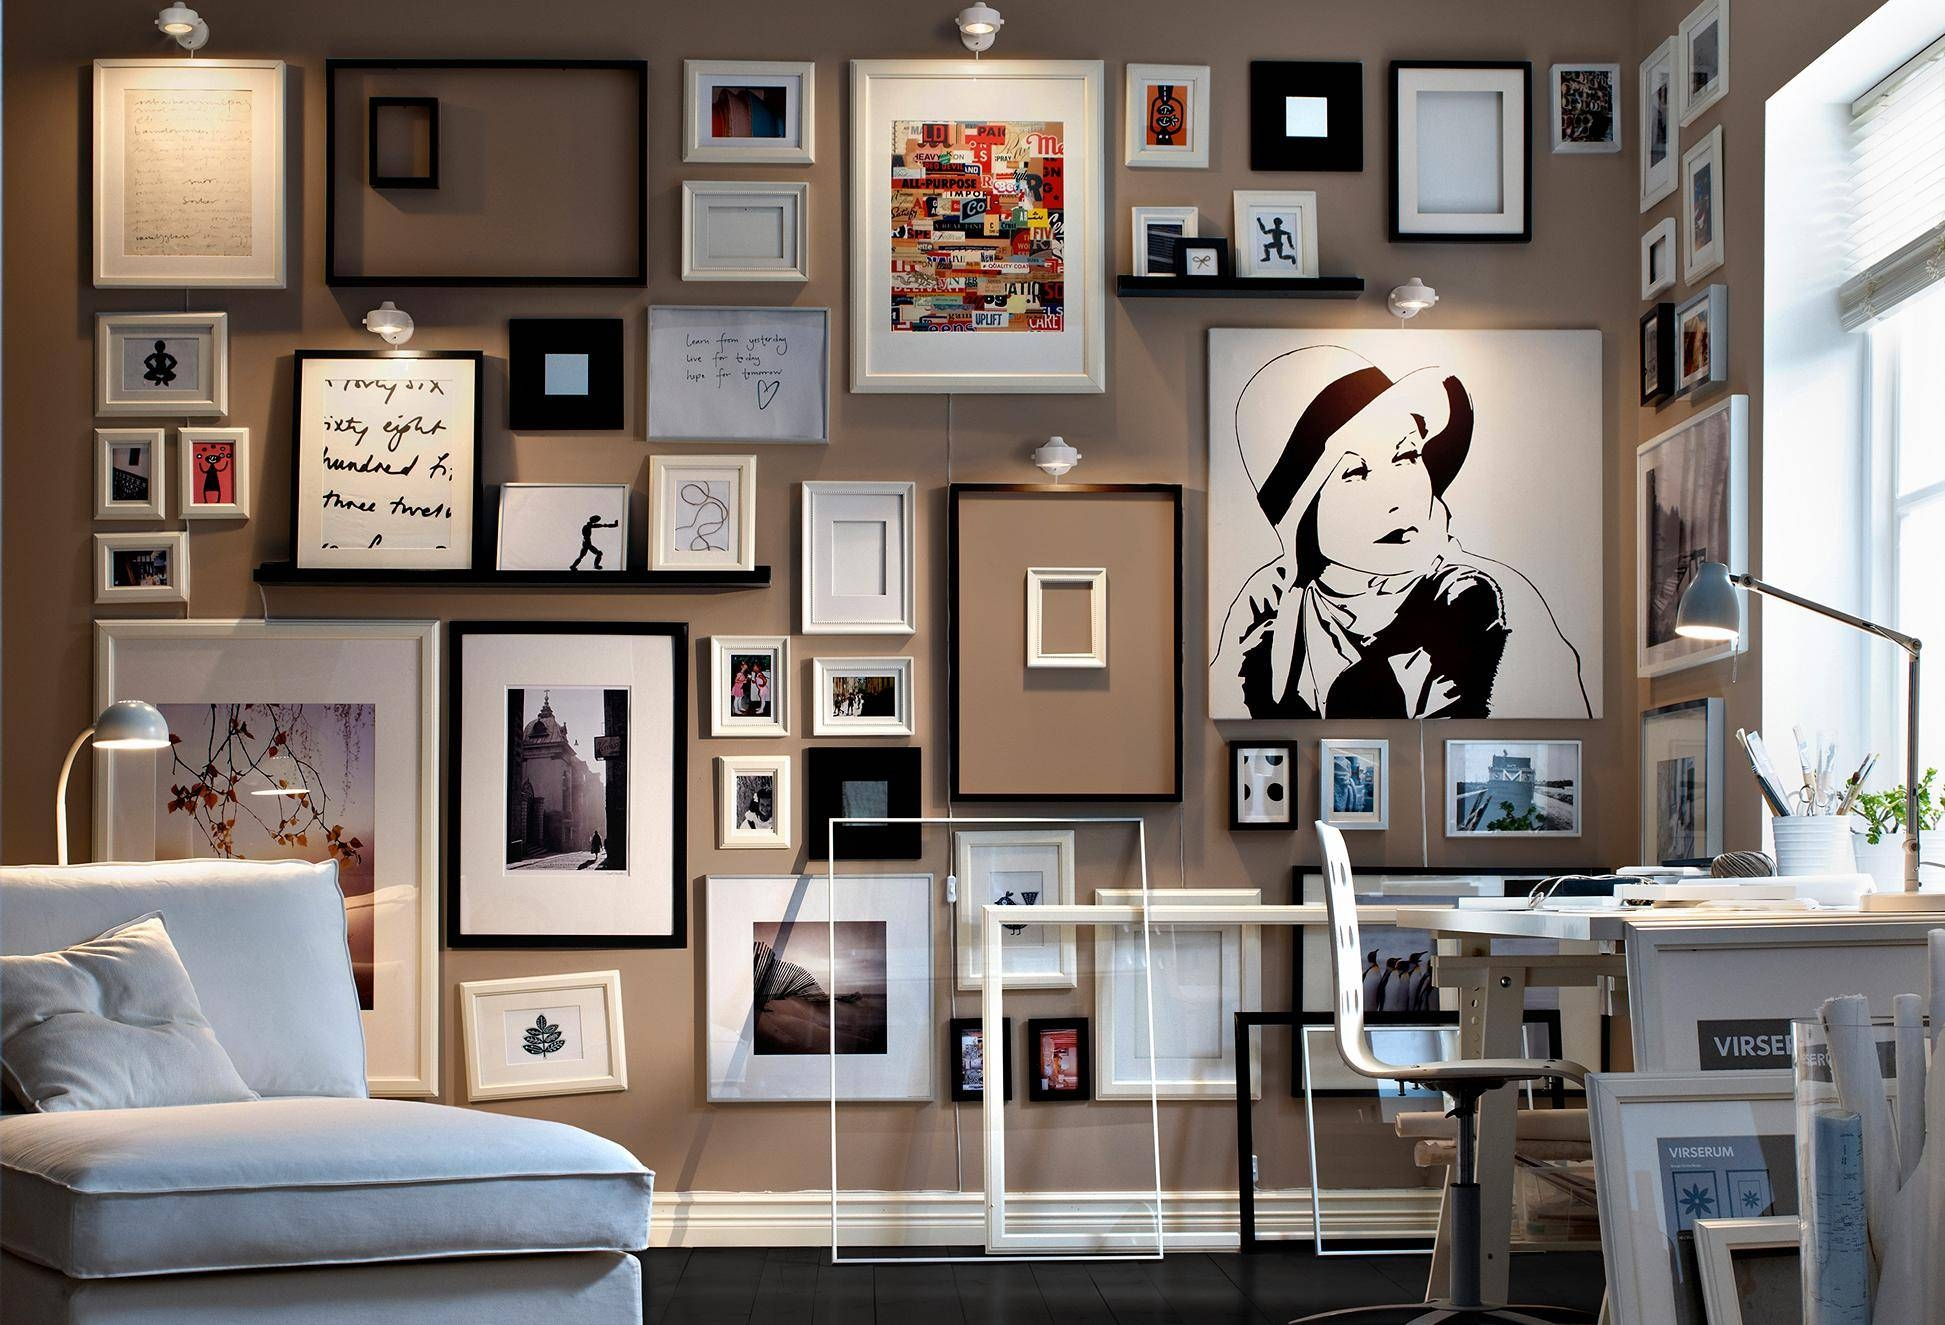 Wall Art Designs: Awesome Designed Wall Of Art With Randomly Throughout Most Popular Photography Wall Art (View 7 of 25)